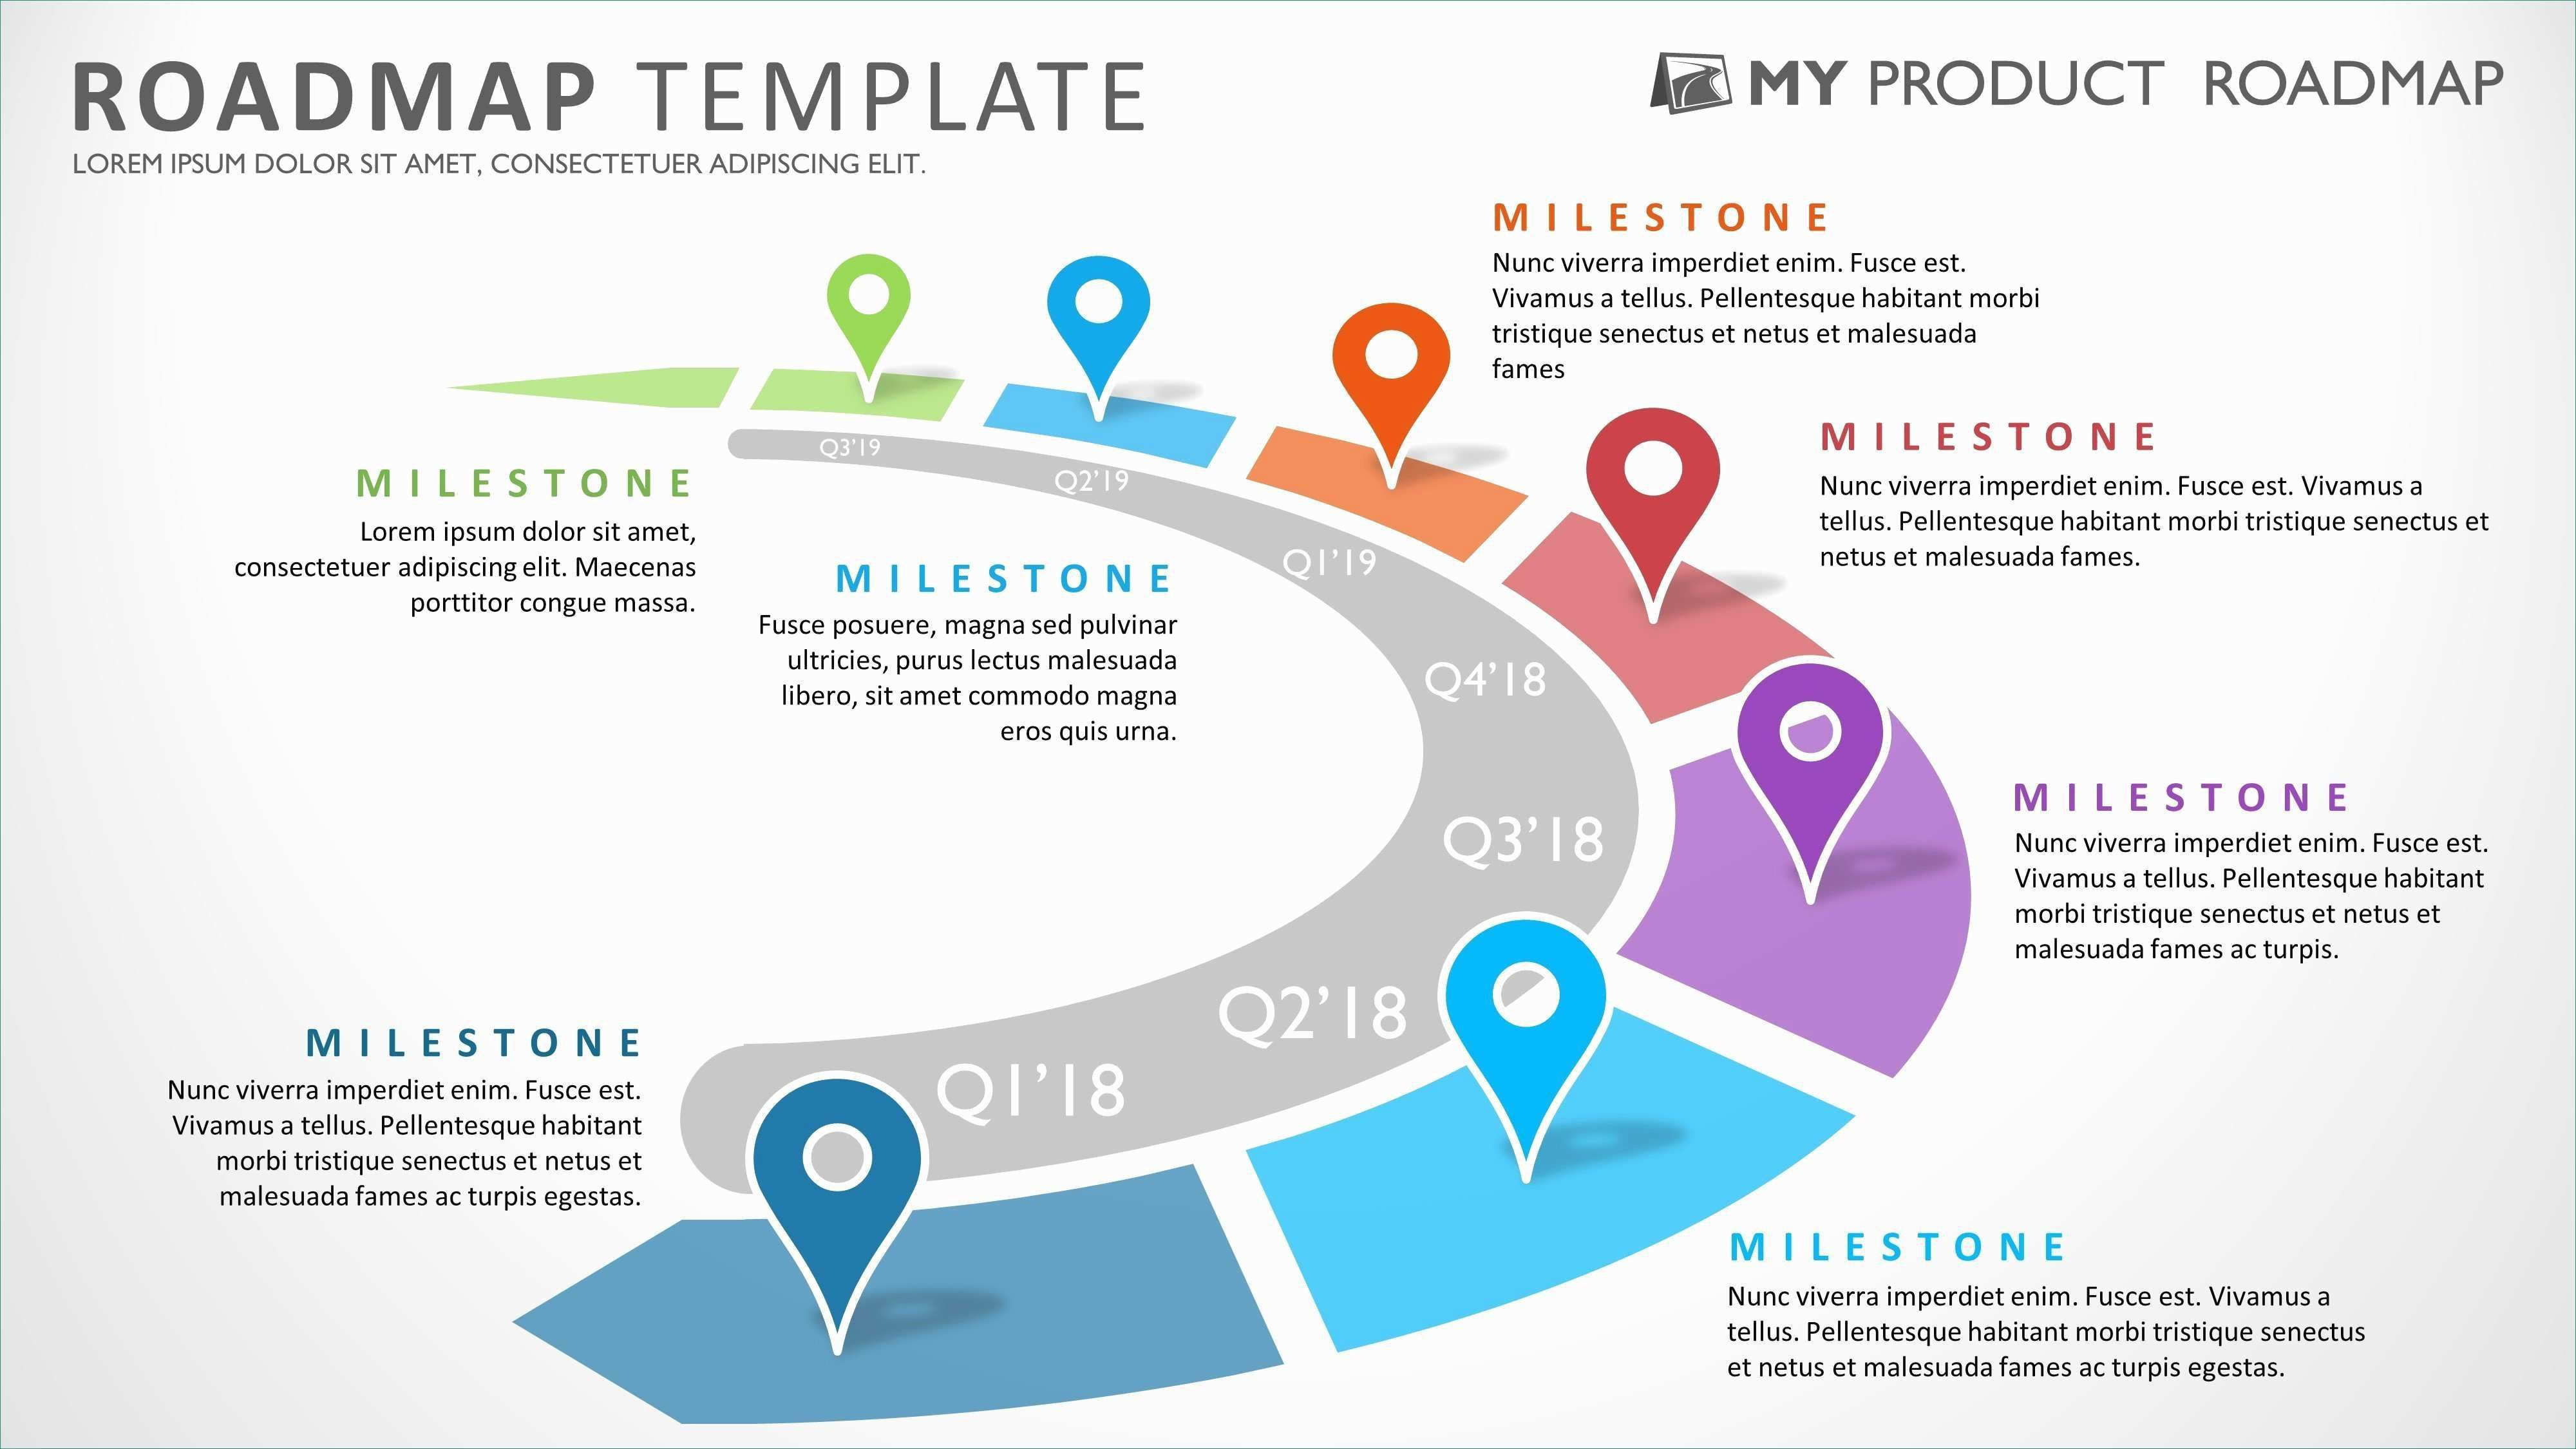 000 Phenomenal Road Map Template Powerpoint High Resolution  Roadmap Ppt Free Download ProductFull